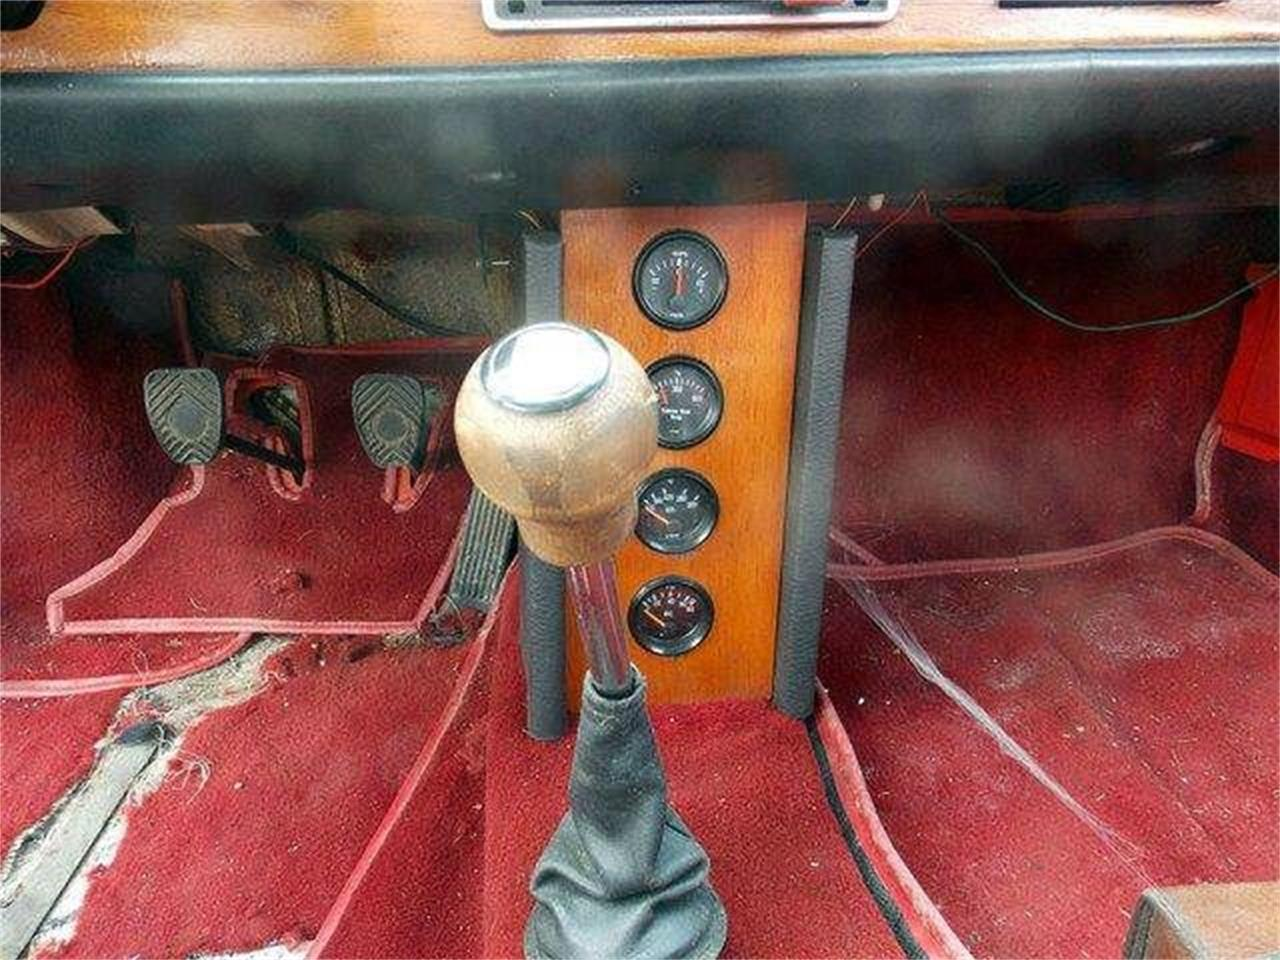 1973 Porsche 914 for sale in Cadillac, MI – photo 12